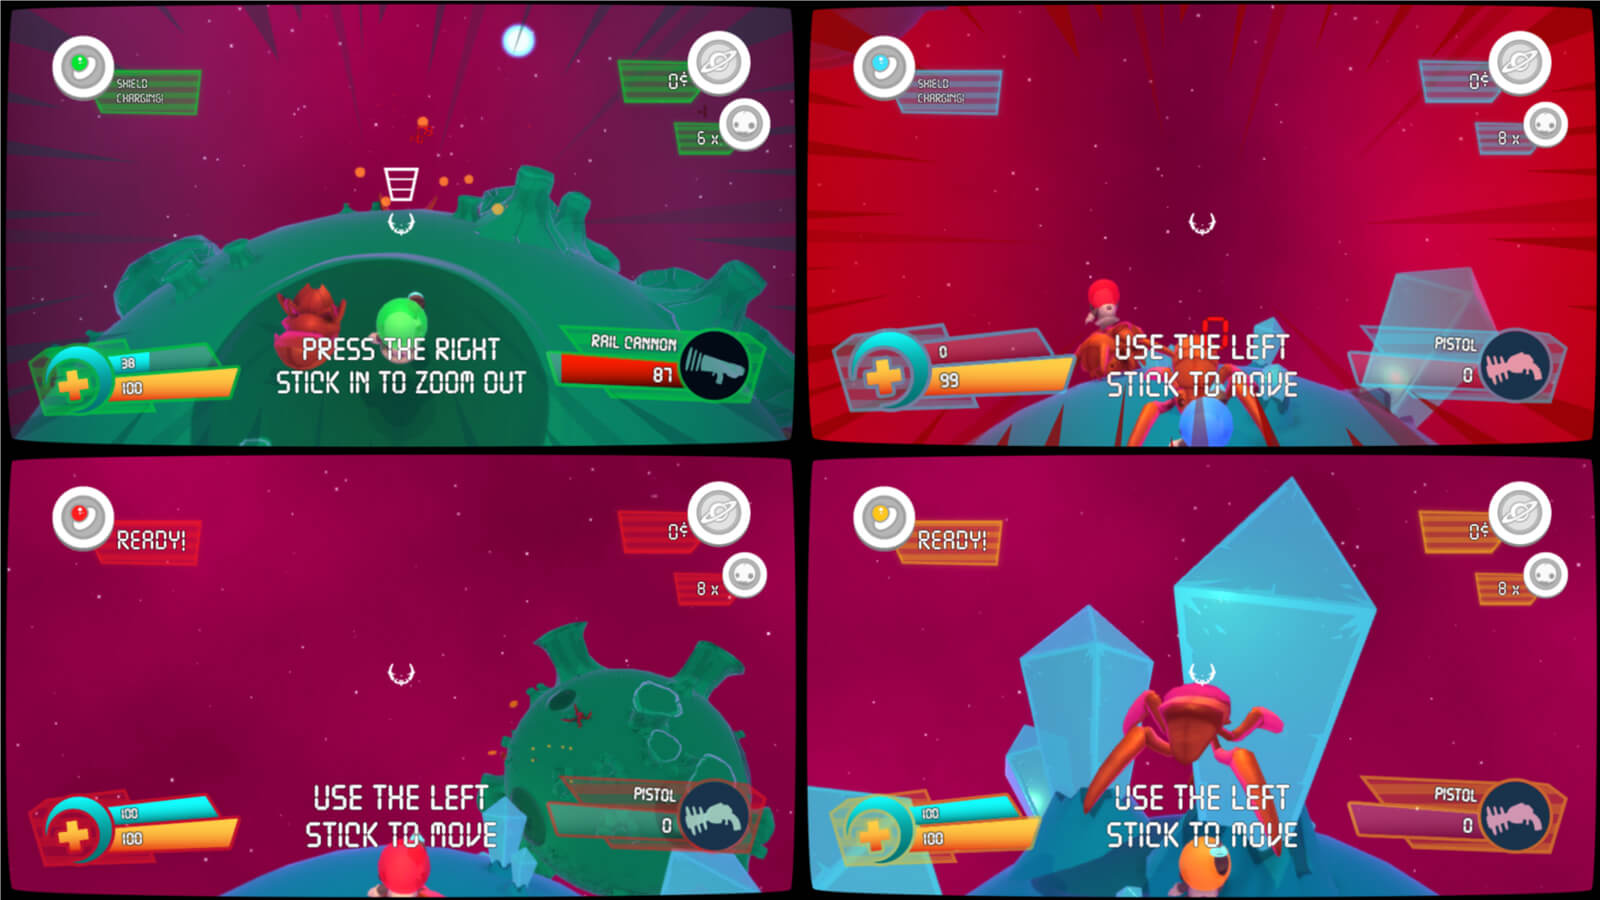 Four players compete in splitscreen multiplayer mode.